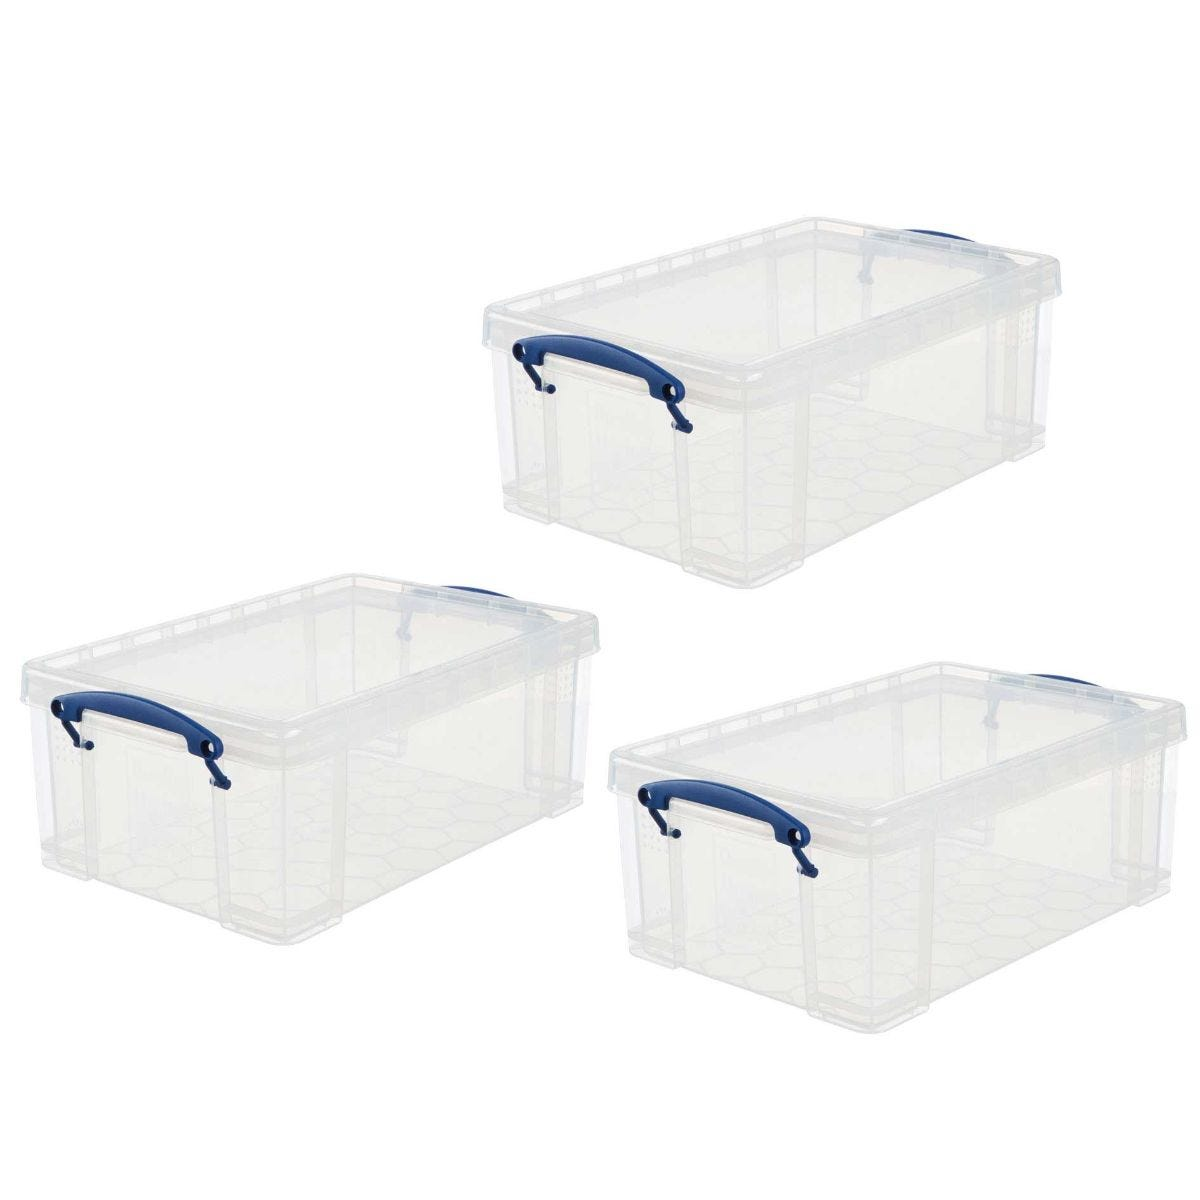 Storage Boxes | Plastic Storage Boxes | Ryman